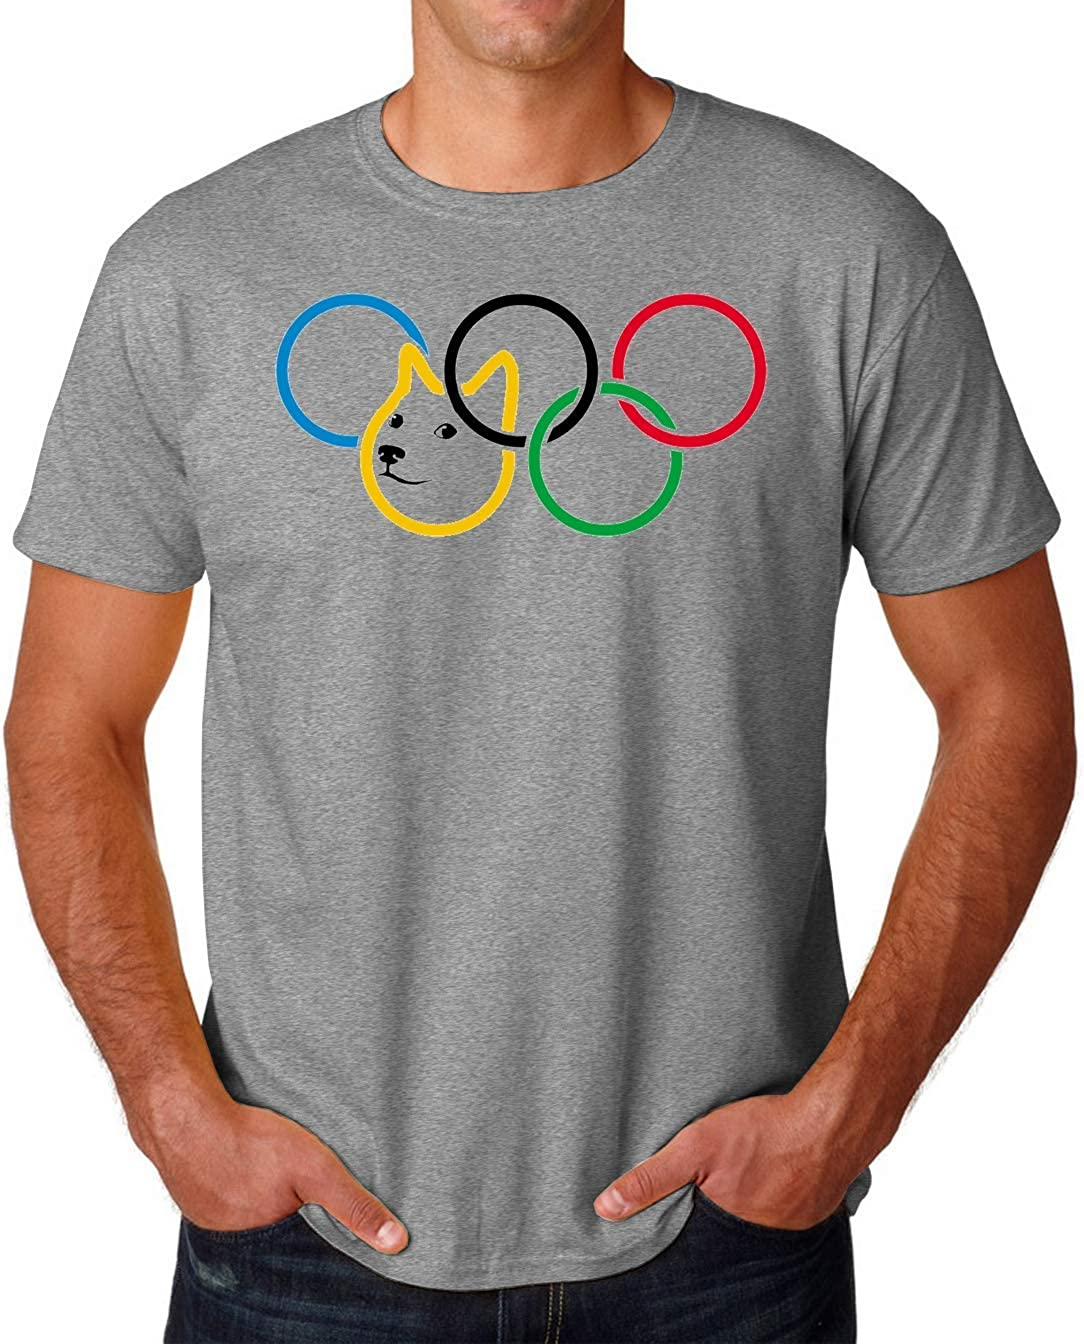 PasTomka Olympic Doge Dog Meme Rings Mens T-Shirt Hombre Camiseta Large: Amazon.es: Ropa y accesorios